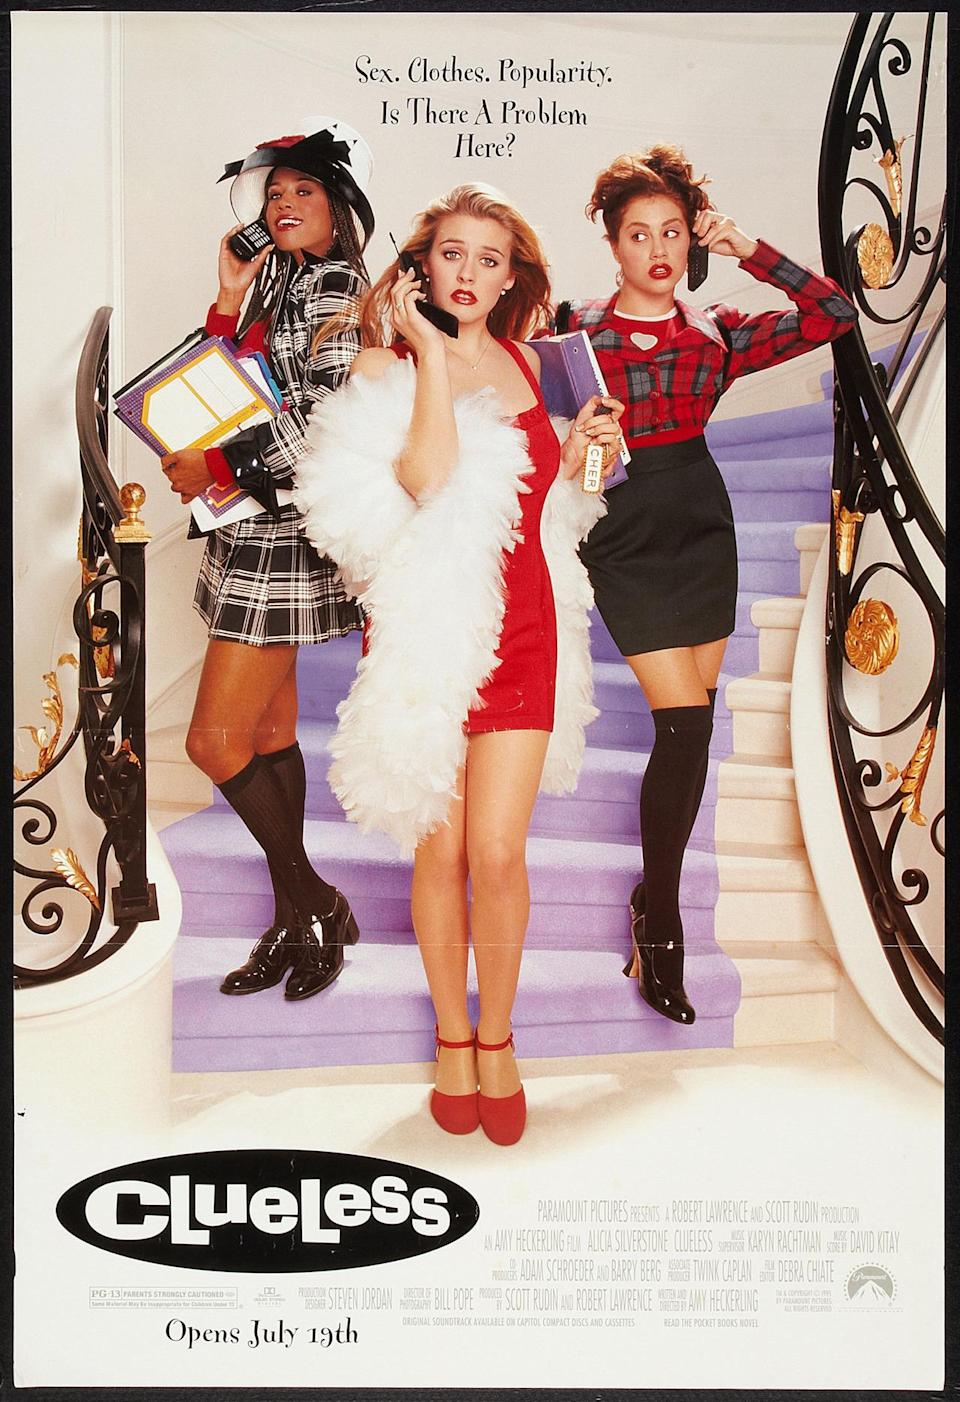 <p>Based on Jane Austen's book, <i>Emma</i>, this iconic '90s teen movie stars Alicia Silverstone as Cher, Stacey Dash as Dionne, and Brittany Murphy as Tai. While Cher and Dionne originally became friends with Tai because they wanted to give her a Beverly Hills makeover, they eventually become true friends, instilling confidence in each other. <i>(Source: Getty Images)</i></p>